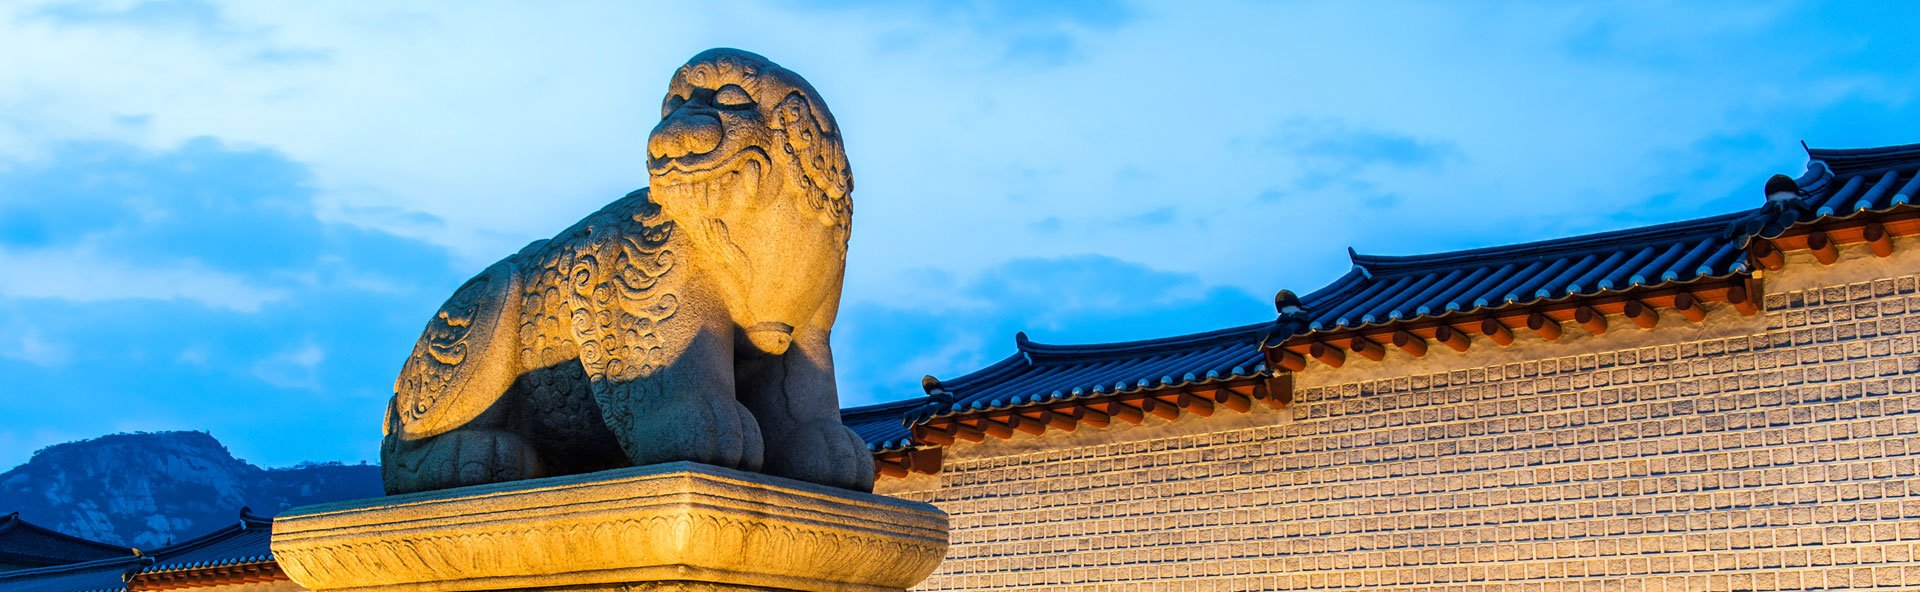 Gyeongbokgung Palace Traditional Statue of Lion